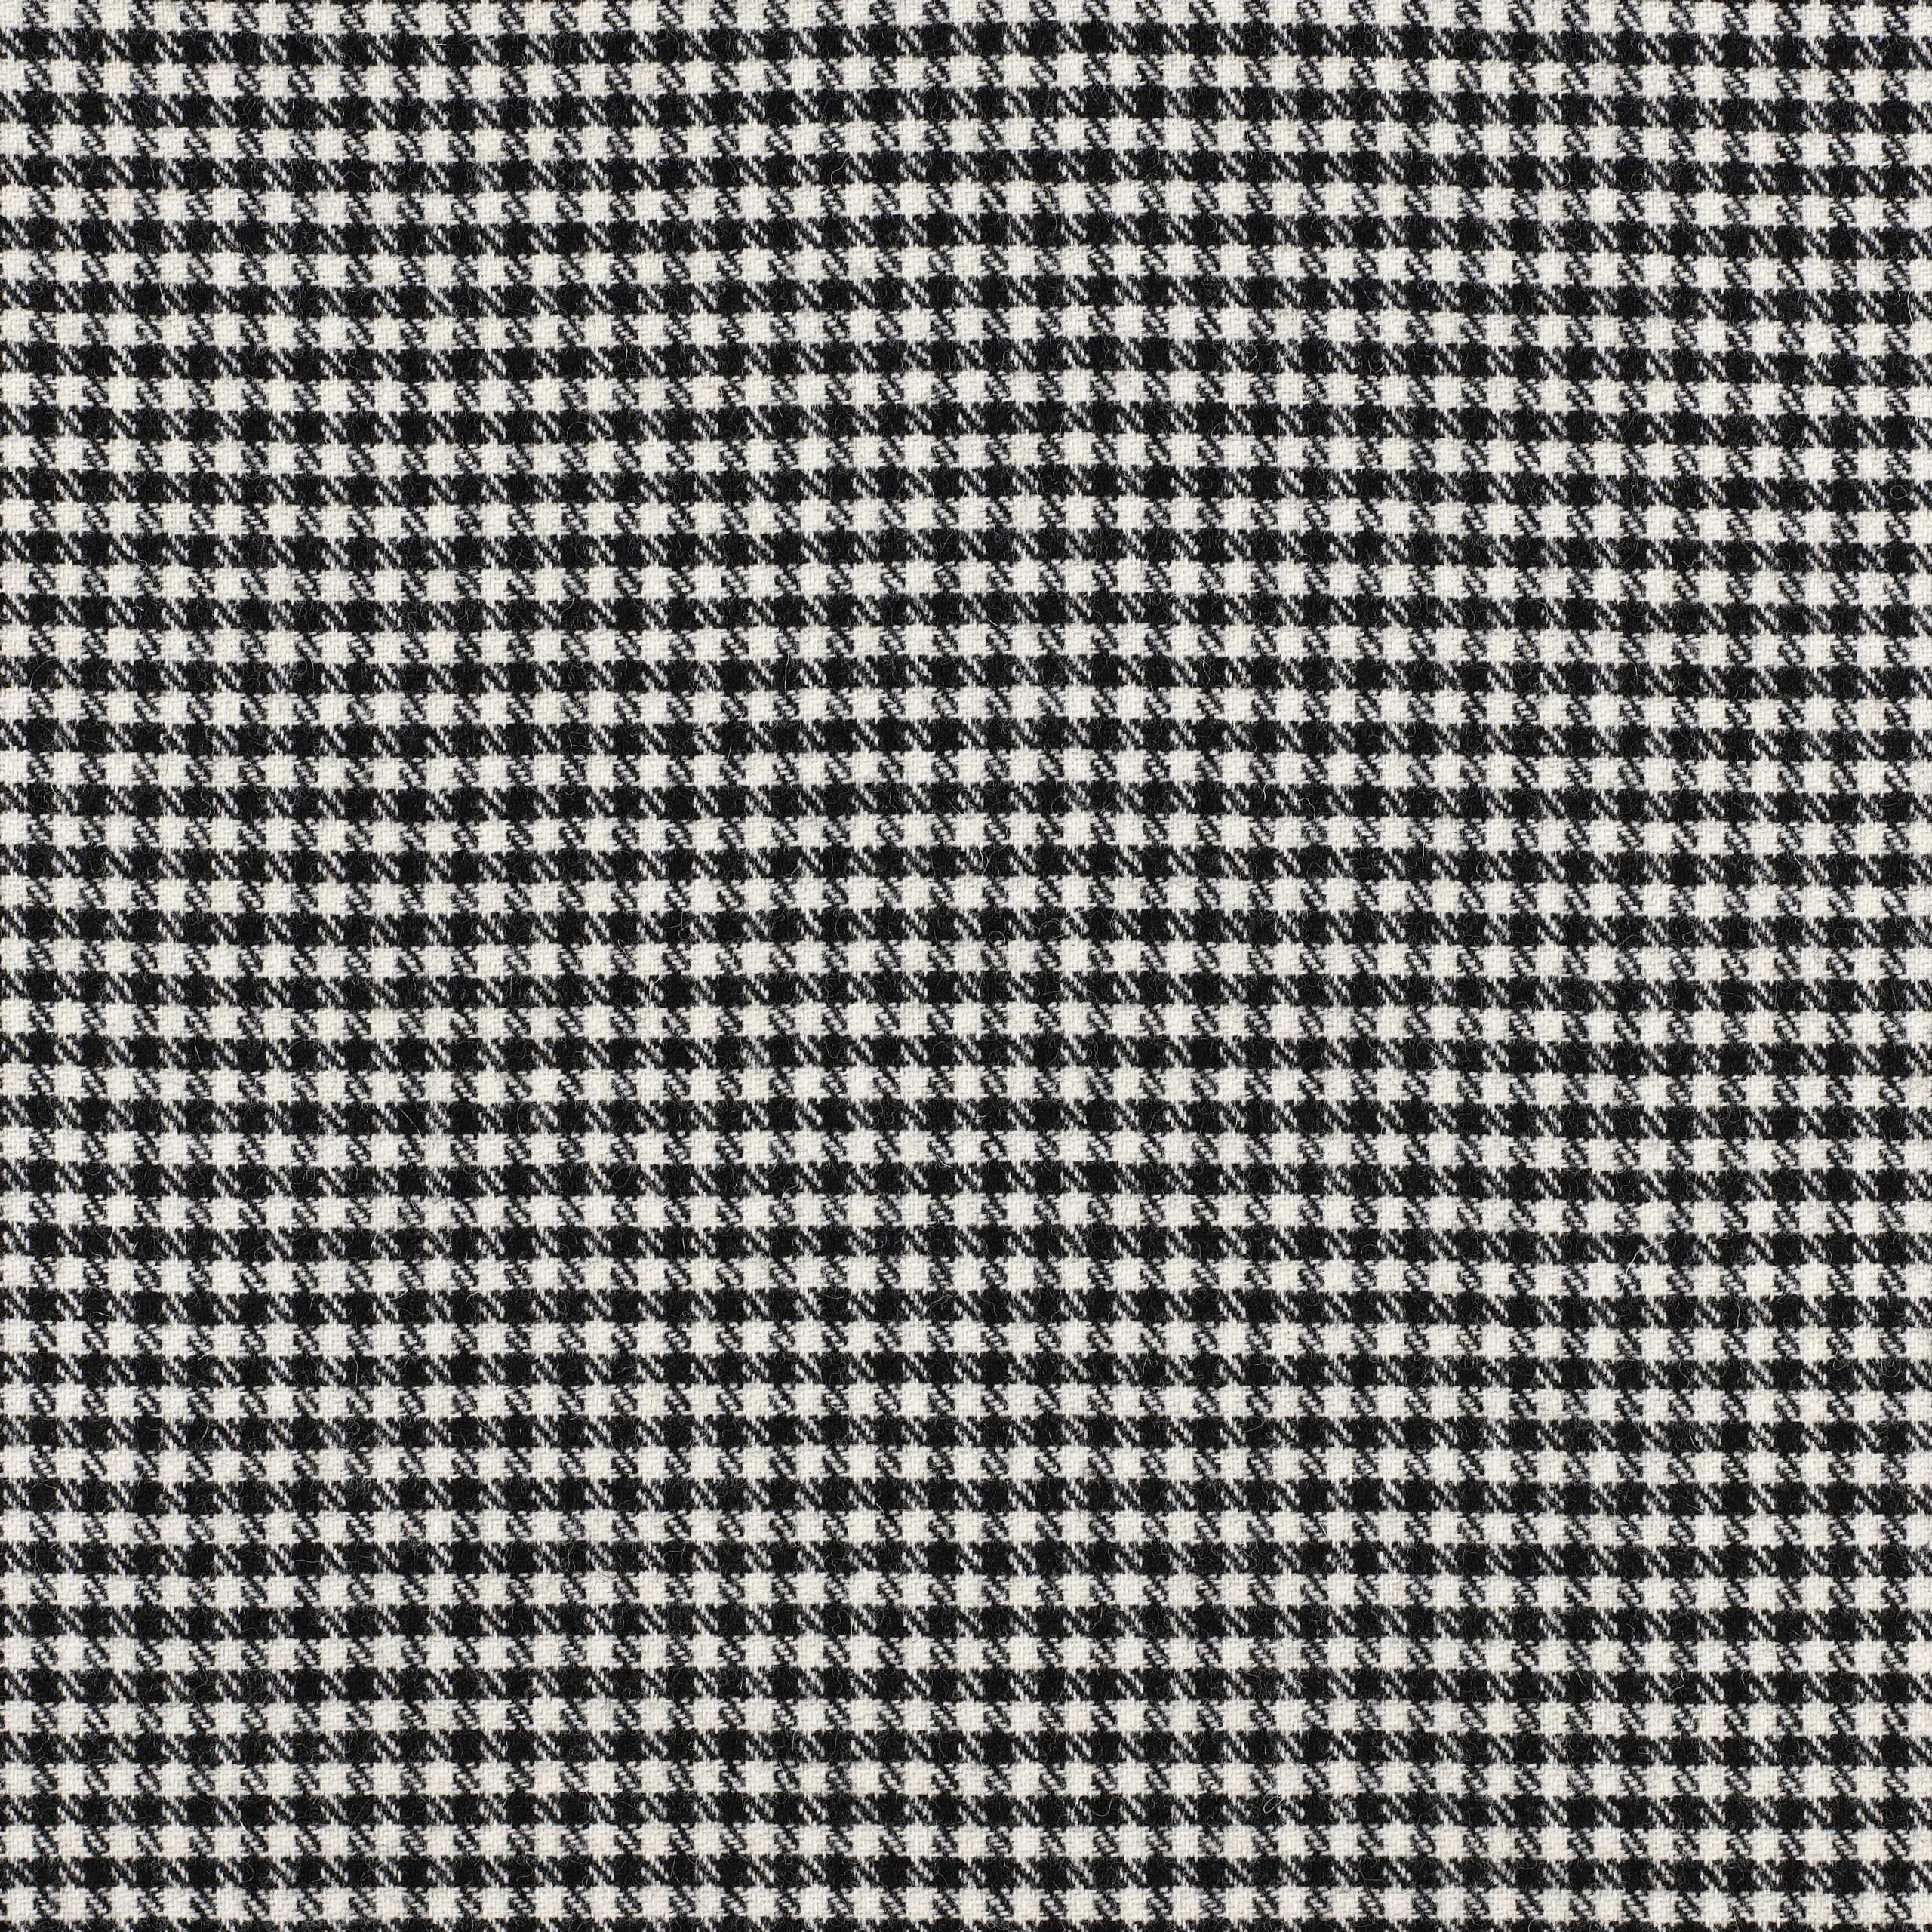 Black/White Dogtooth